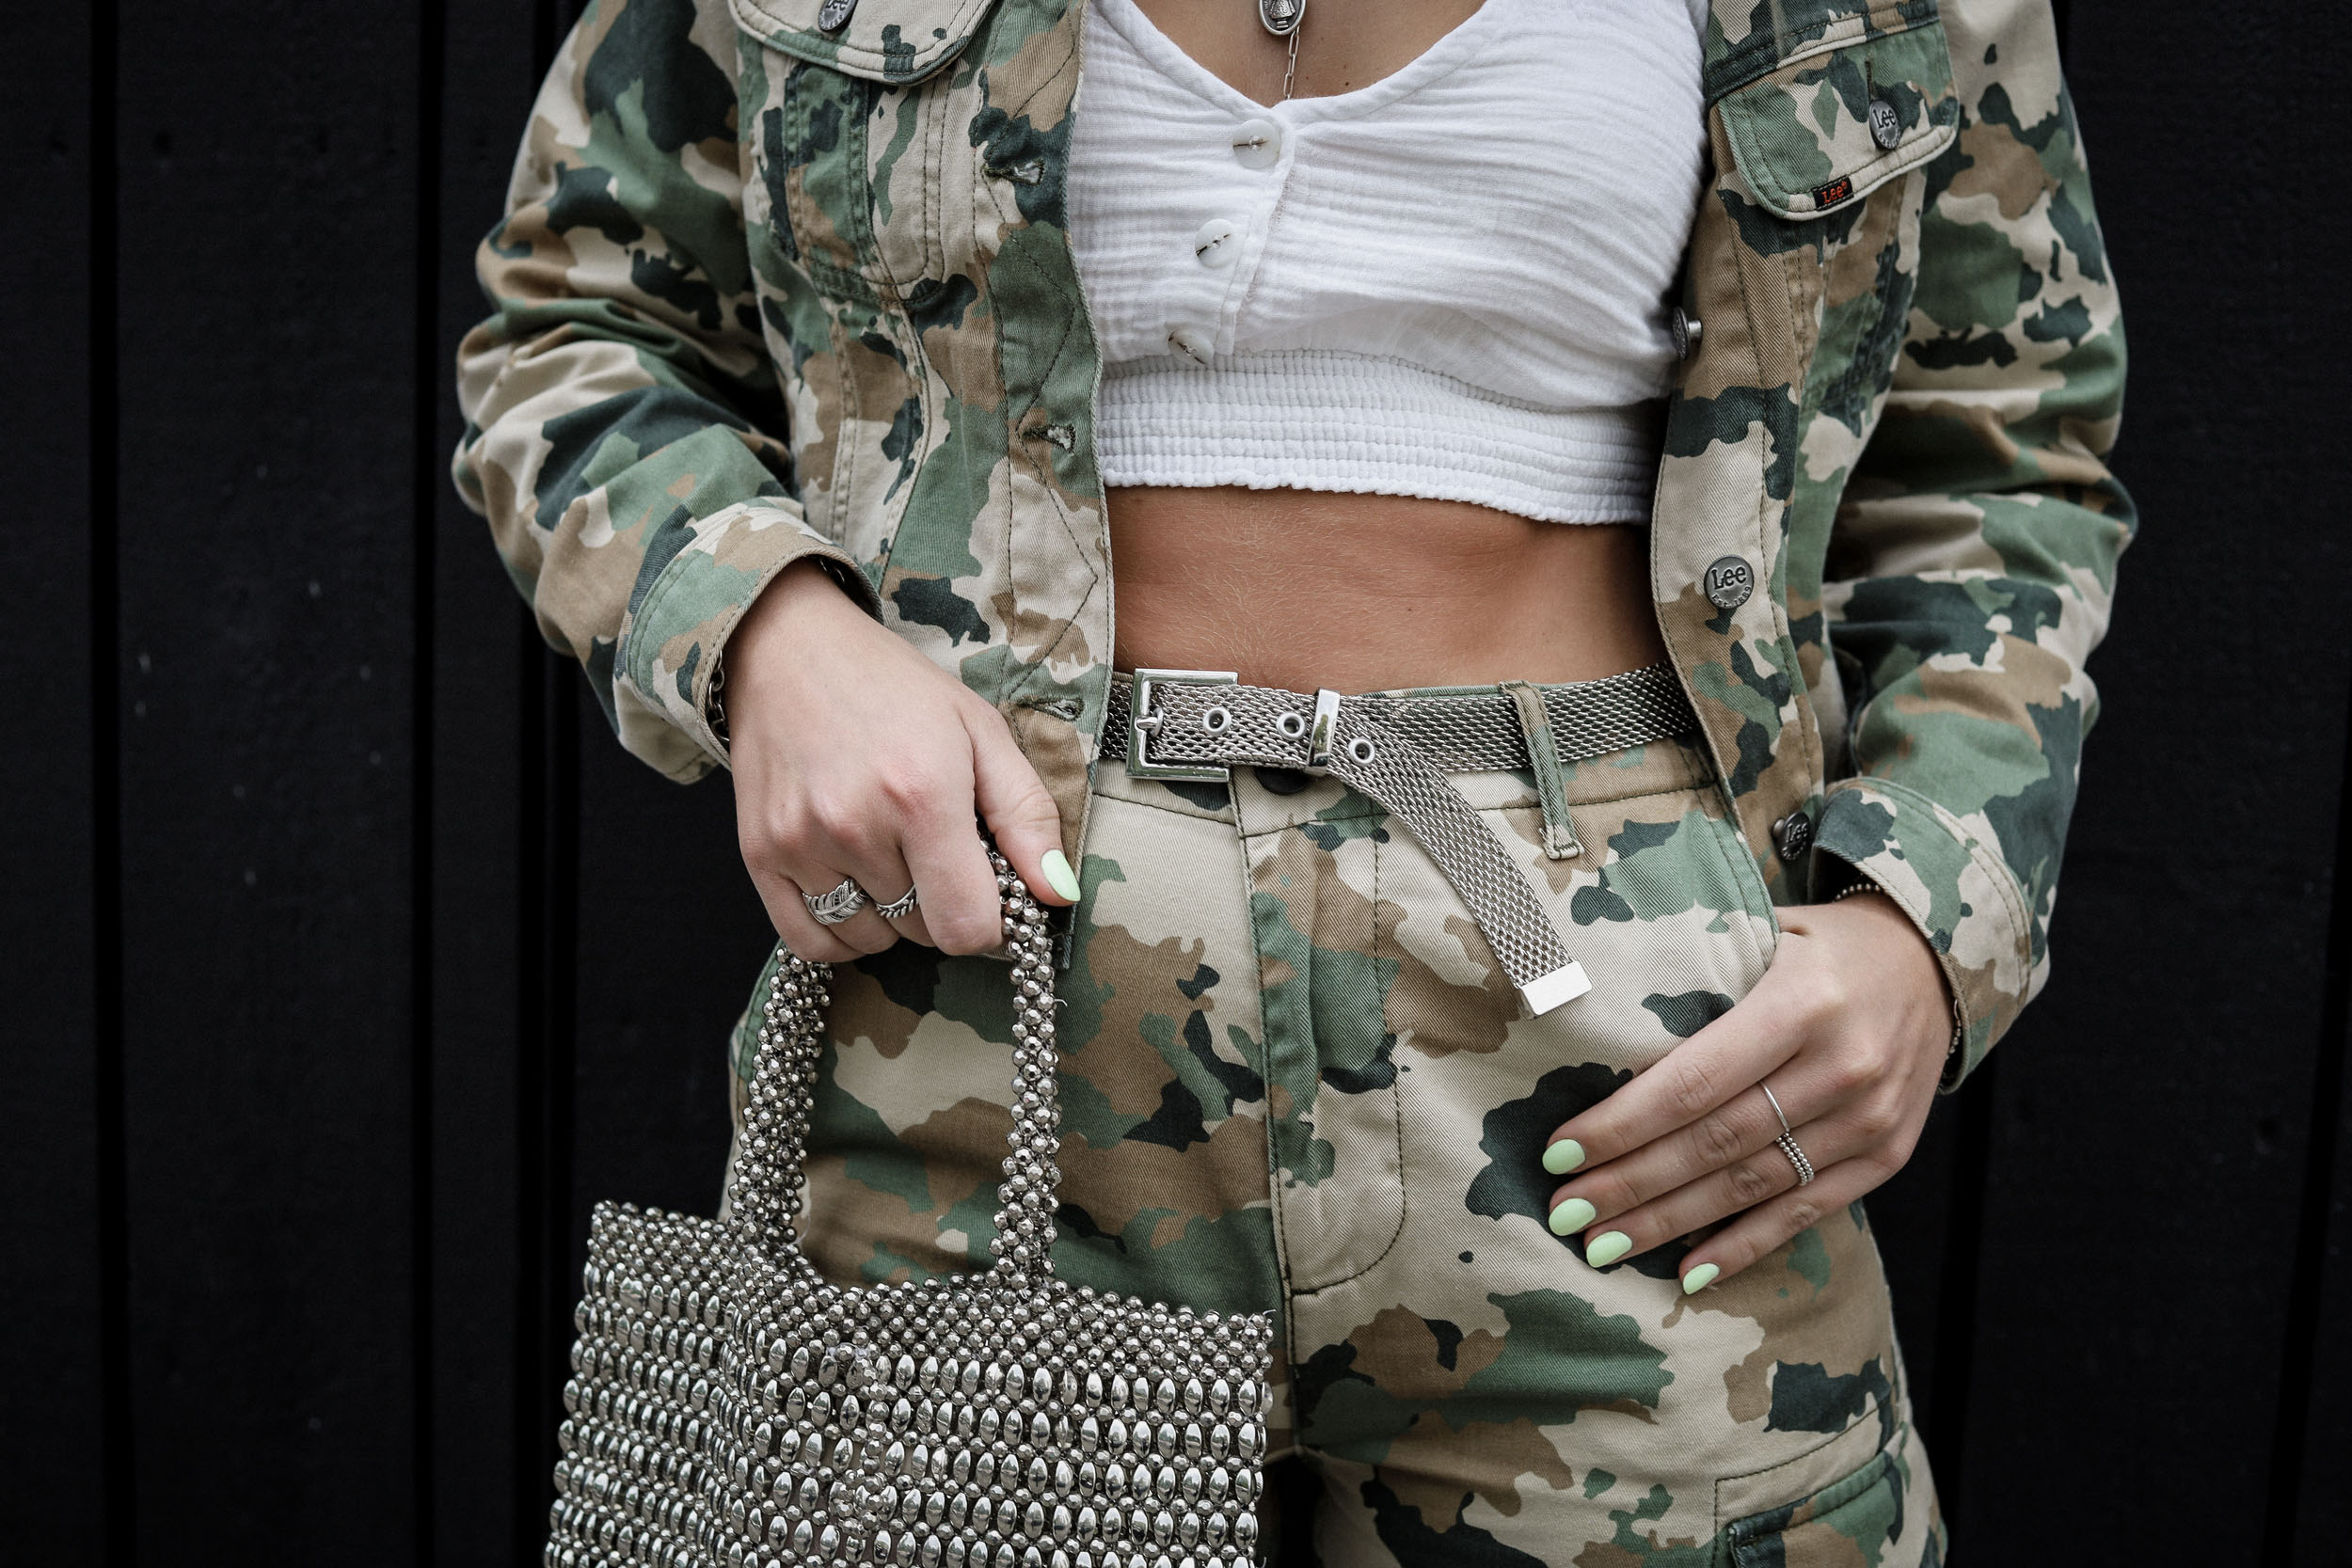 lauralamode-fashion-fashion blog-outfit-ootd-look-streetstyle-style-inspo-look-military-style-berlin-munich-nakd-military trend-trend report-blogger-deutschland